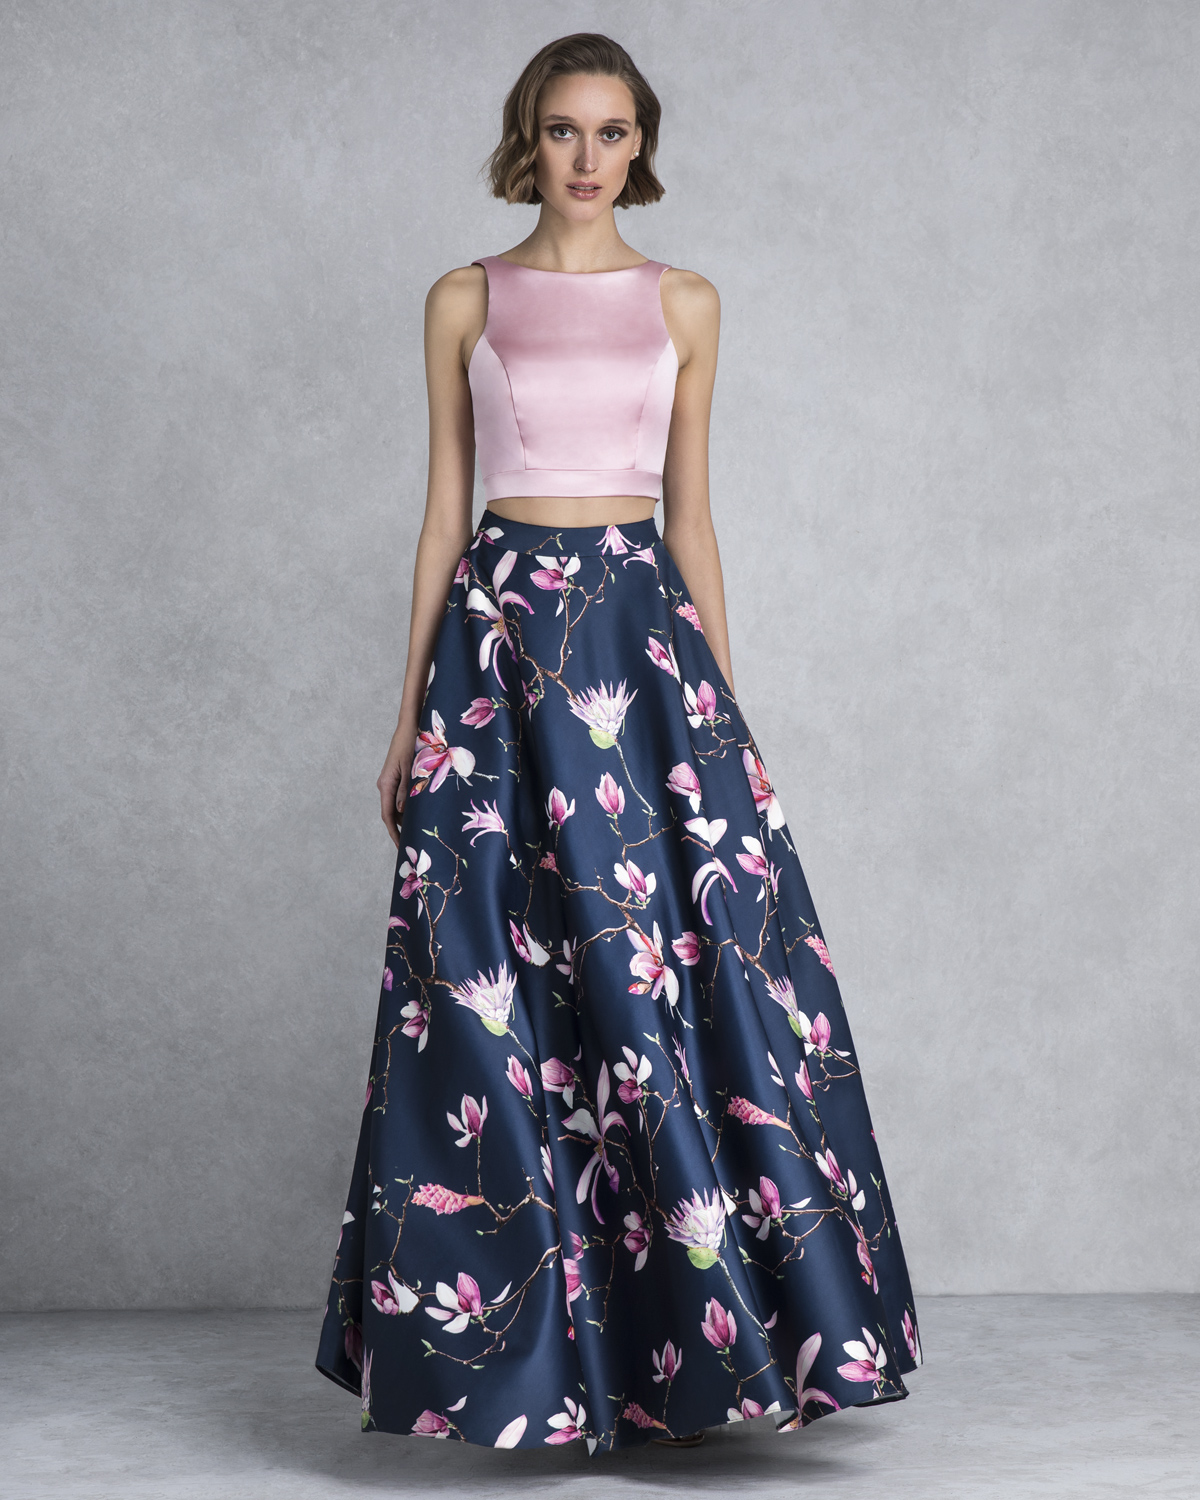 Cocktail Dresses / Long floral skirt with printed or solid color top